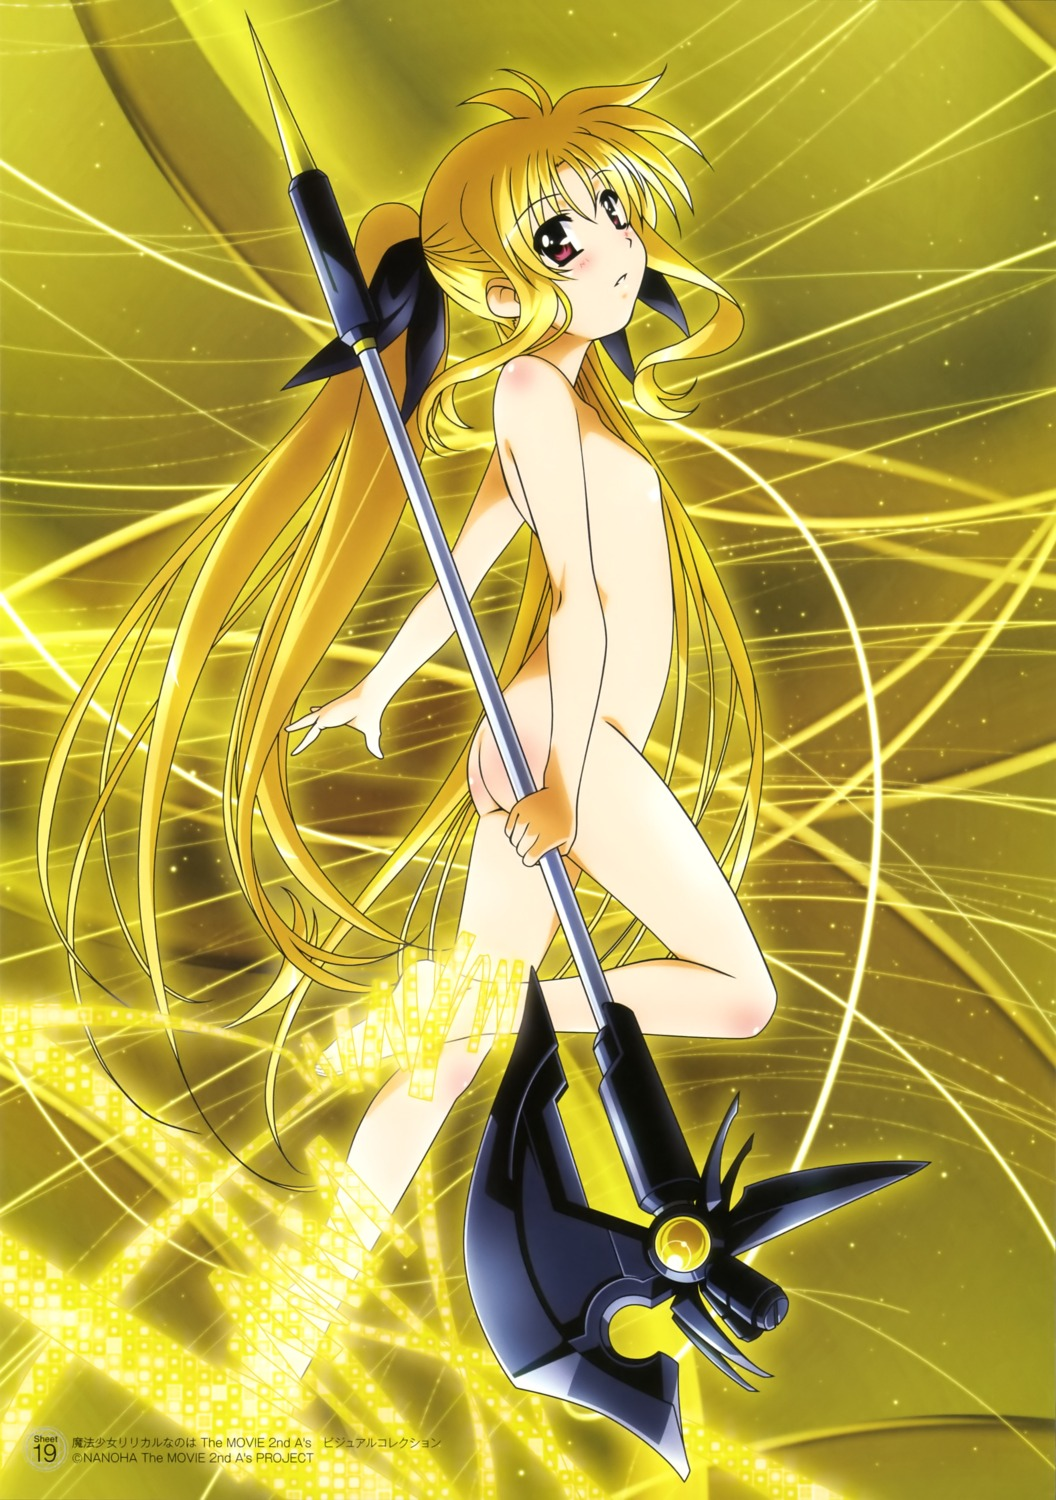 fate_testarossa loli mahou_shoujo_lyrical_nanoha naked weapon